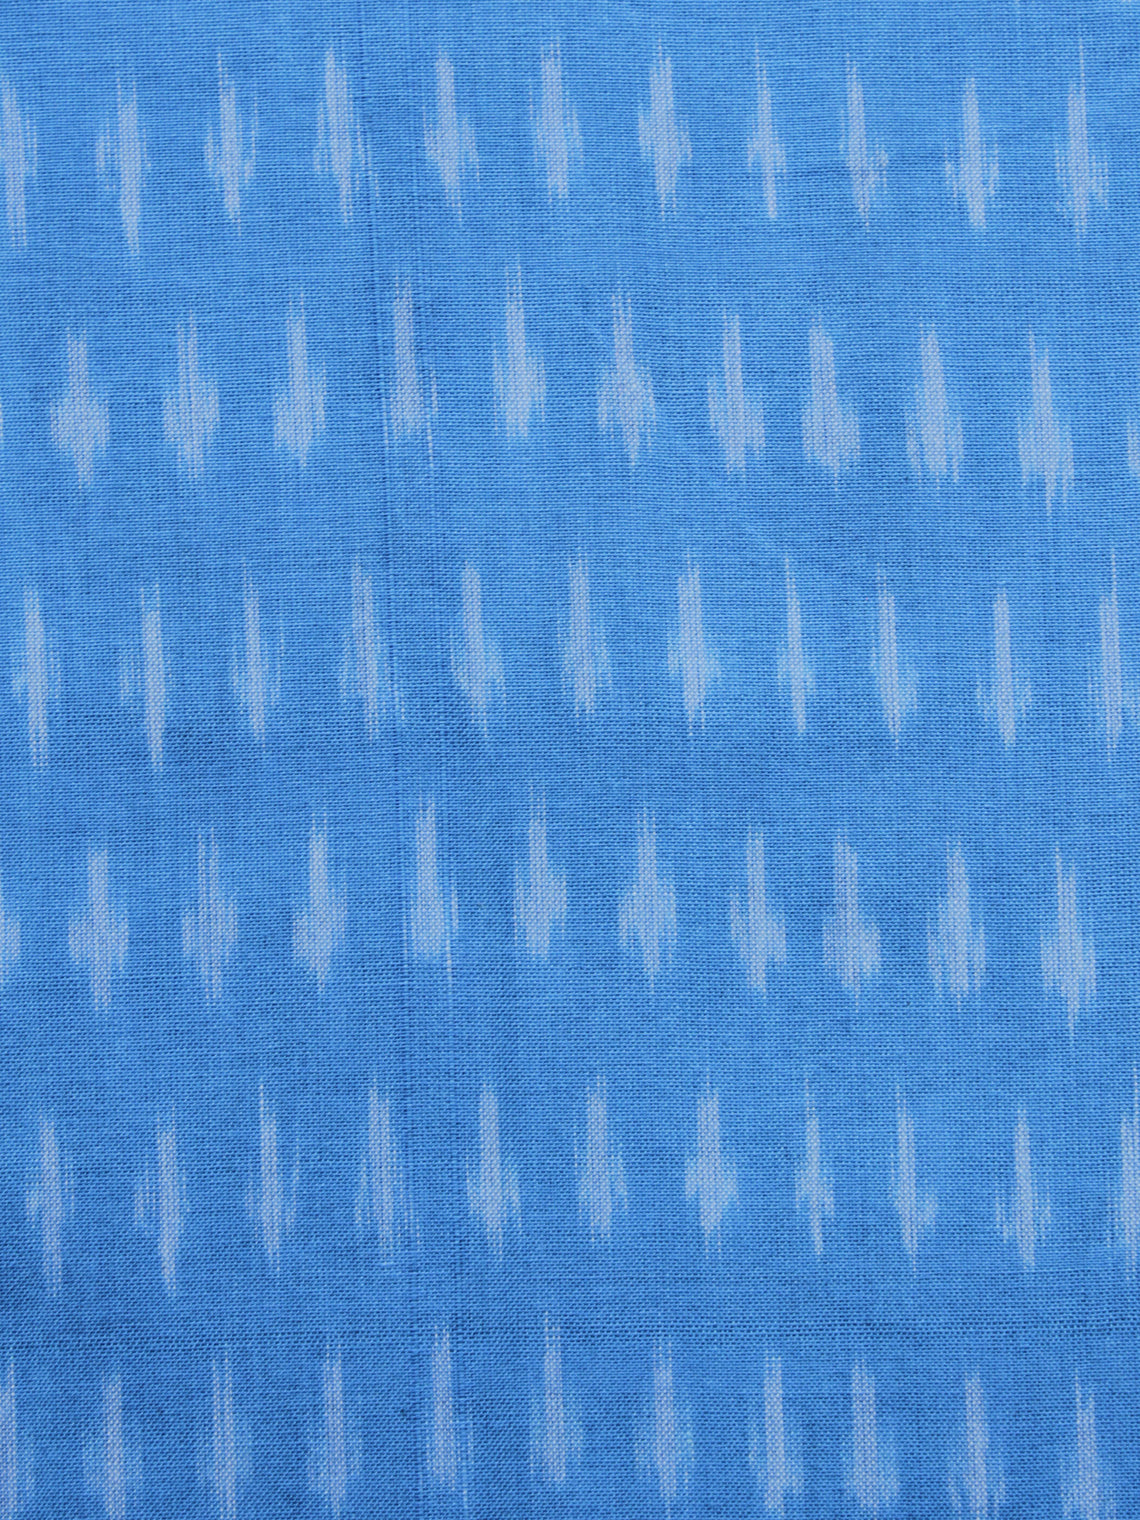 Blue Ivory Pochampally Hand Weaved Ikat Mercerised Cotton Fabric Per Meter - F002F1031